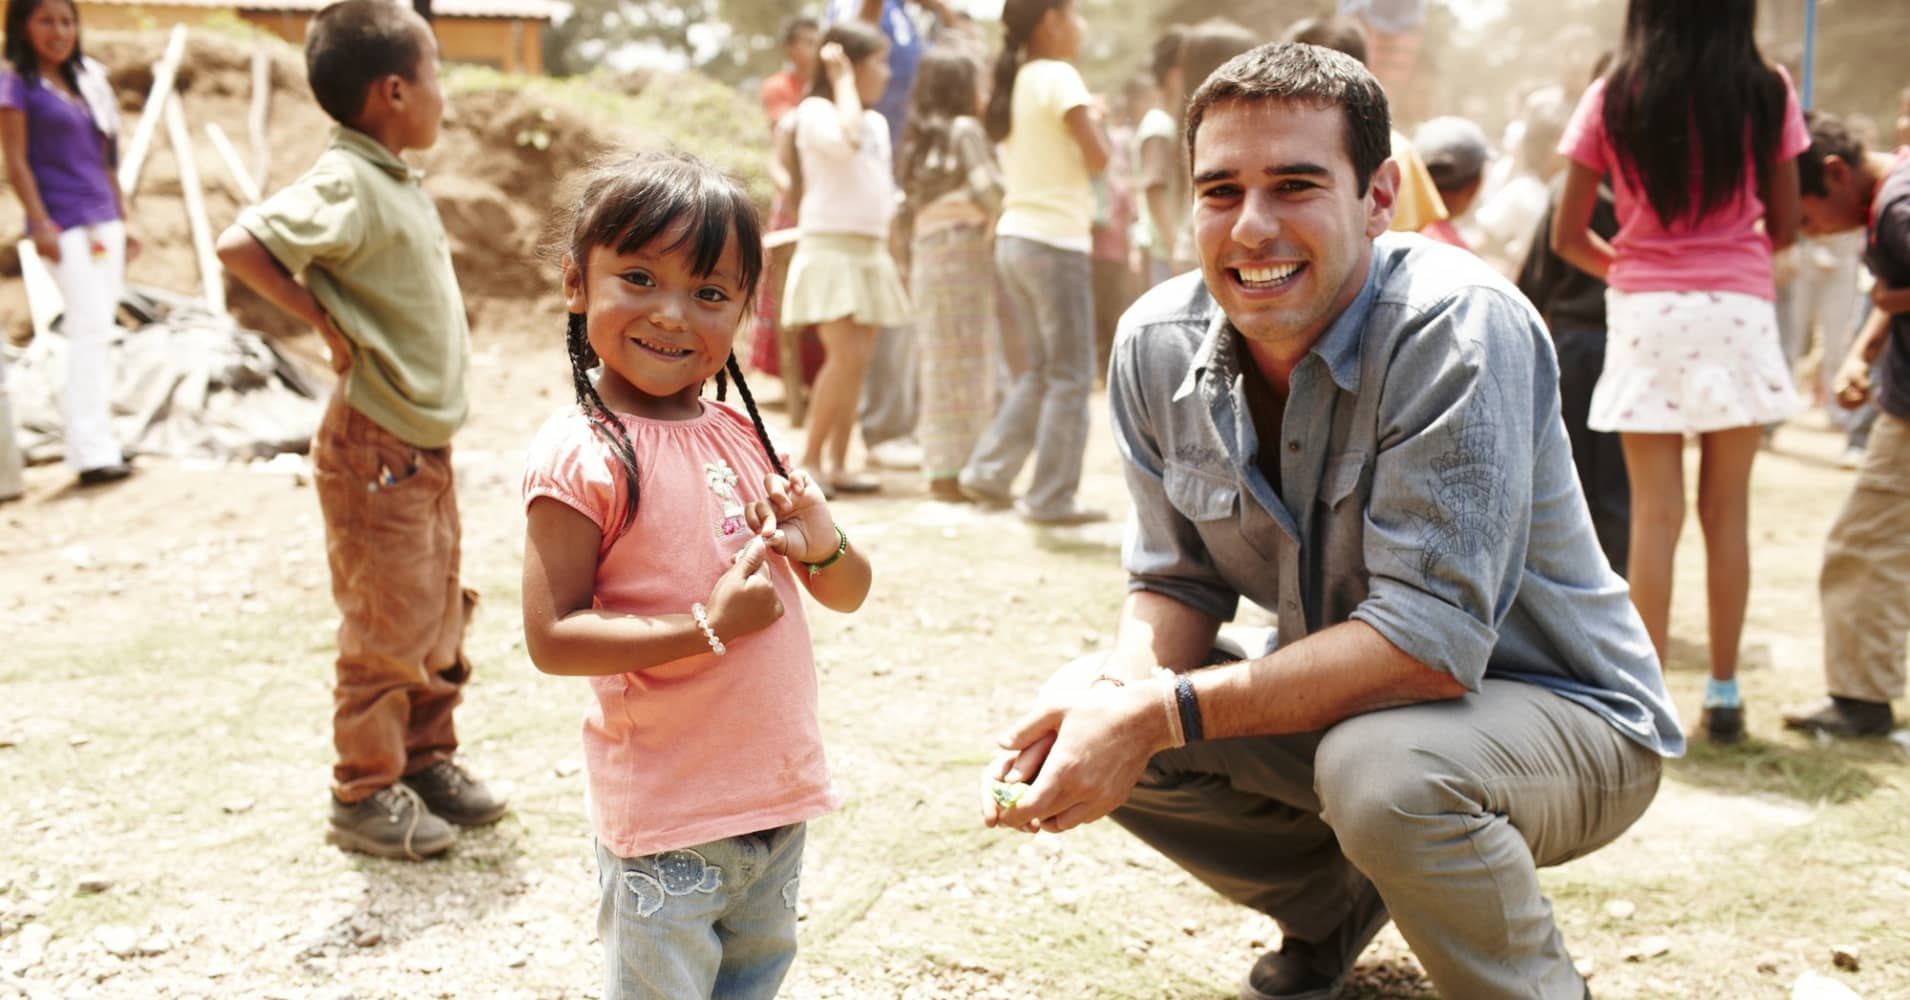 Adam Braun, the founder of Pencils of Promise